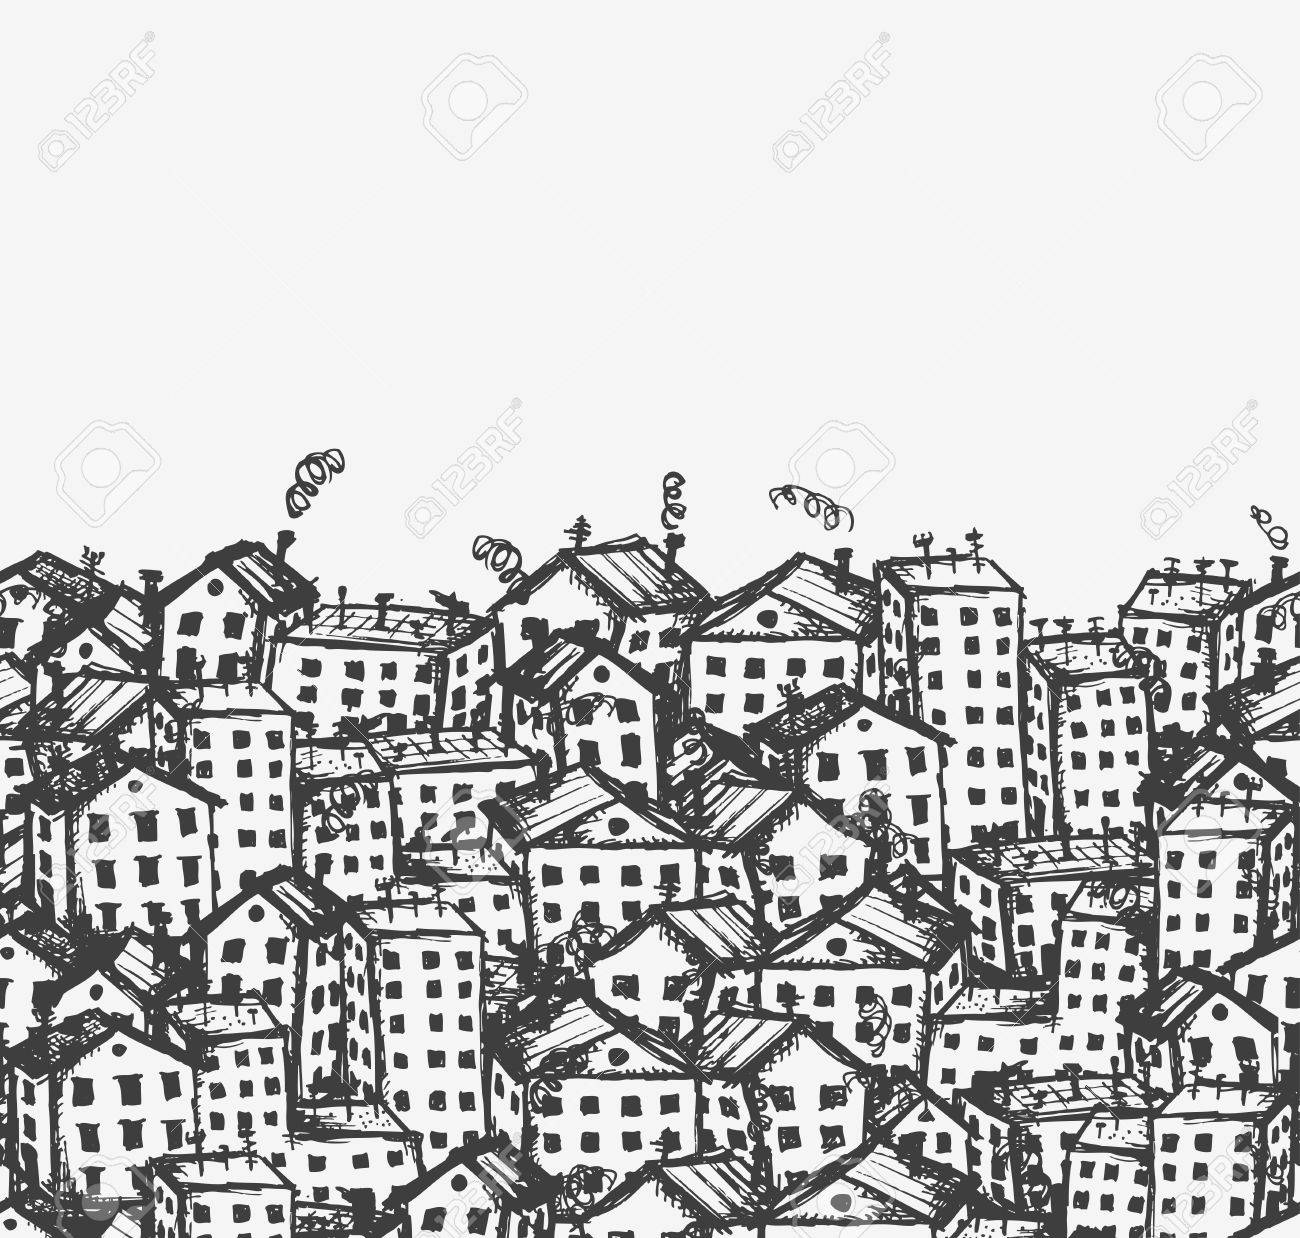 City sketch, seamless background for your design Stock Vector - 12397328